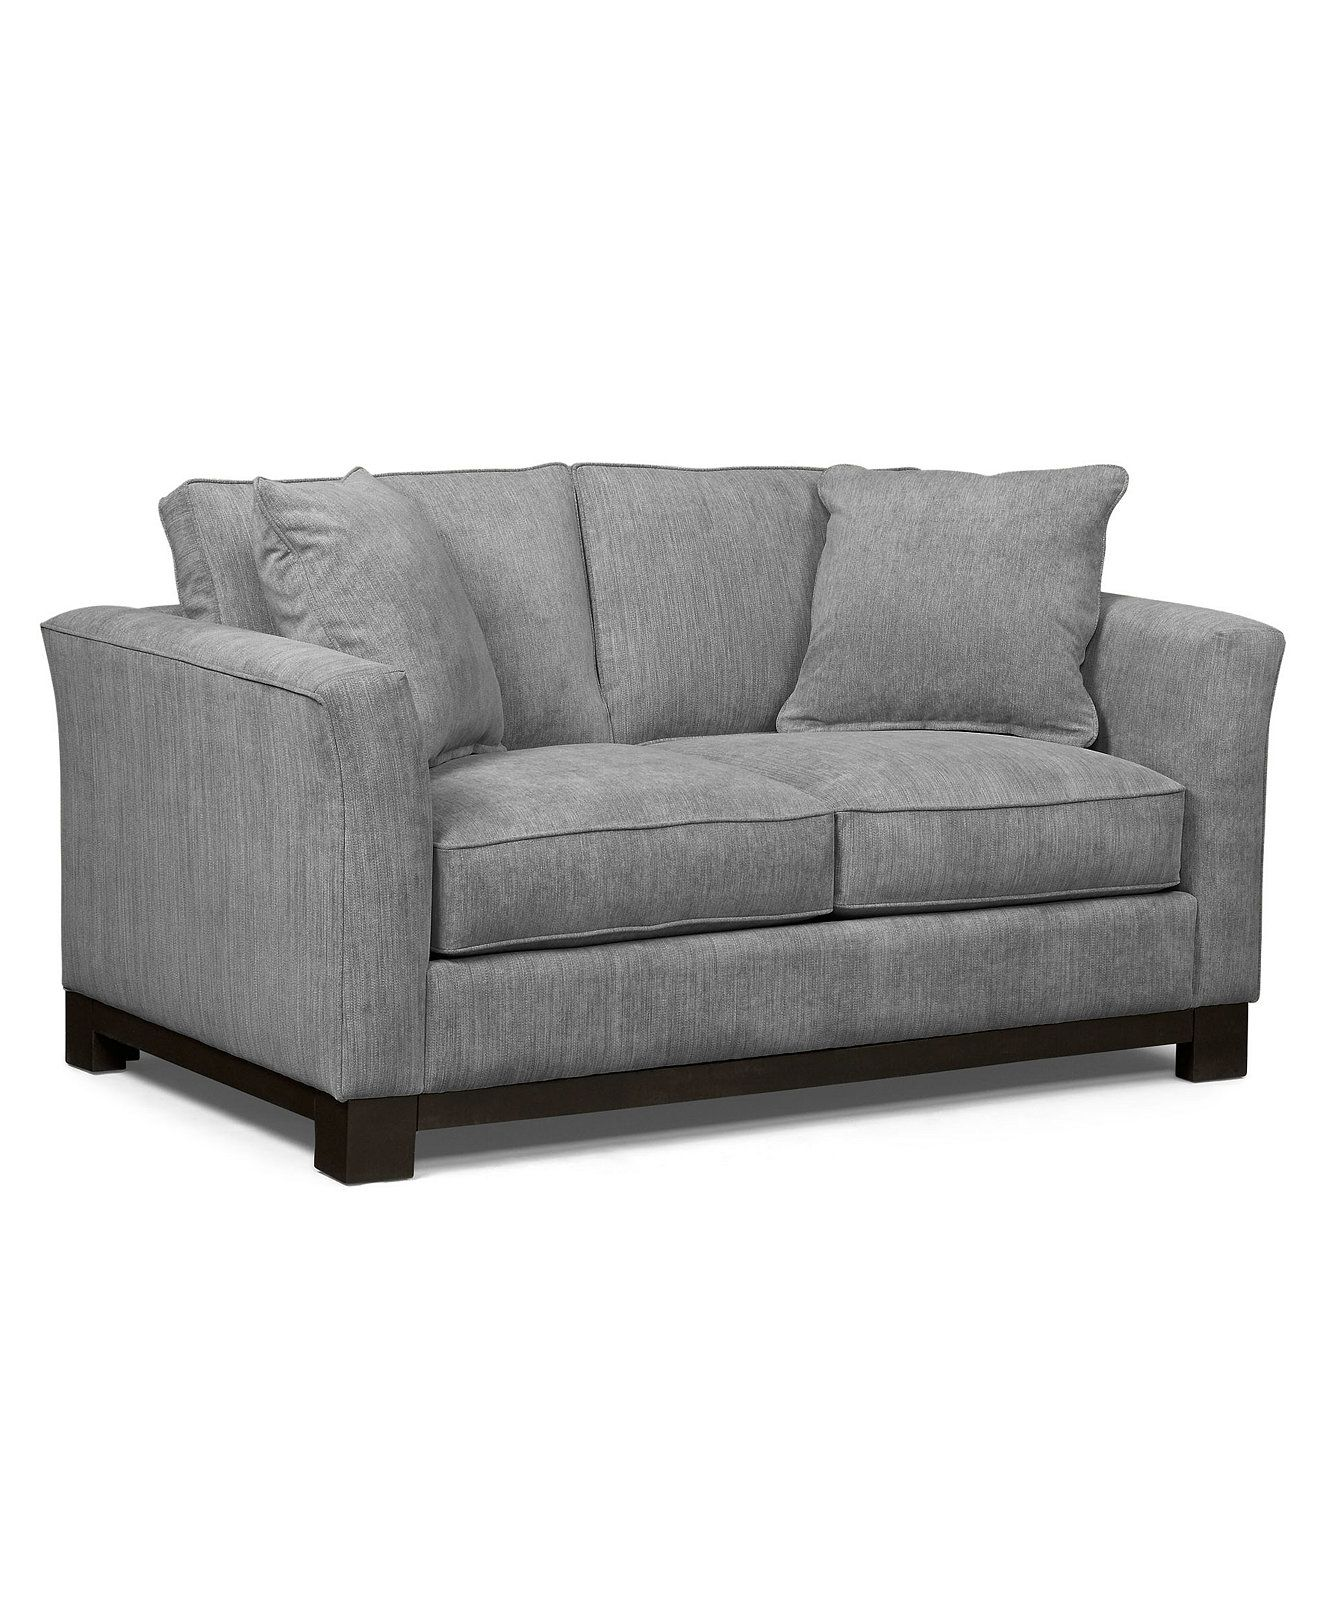 s pearl off sofa sofas couch set glif leather loveseat macys milan org and macy loveseats